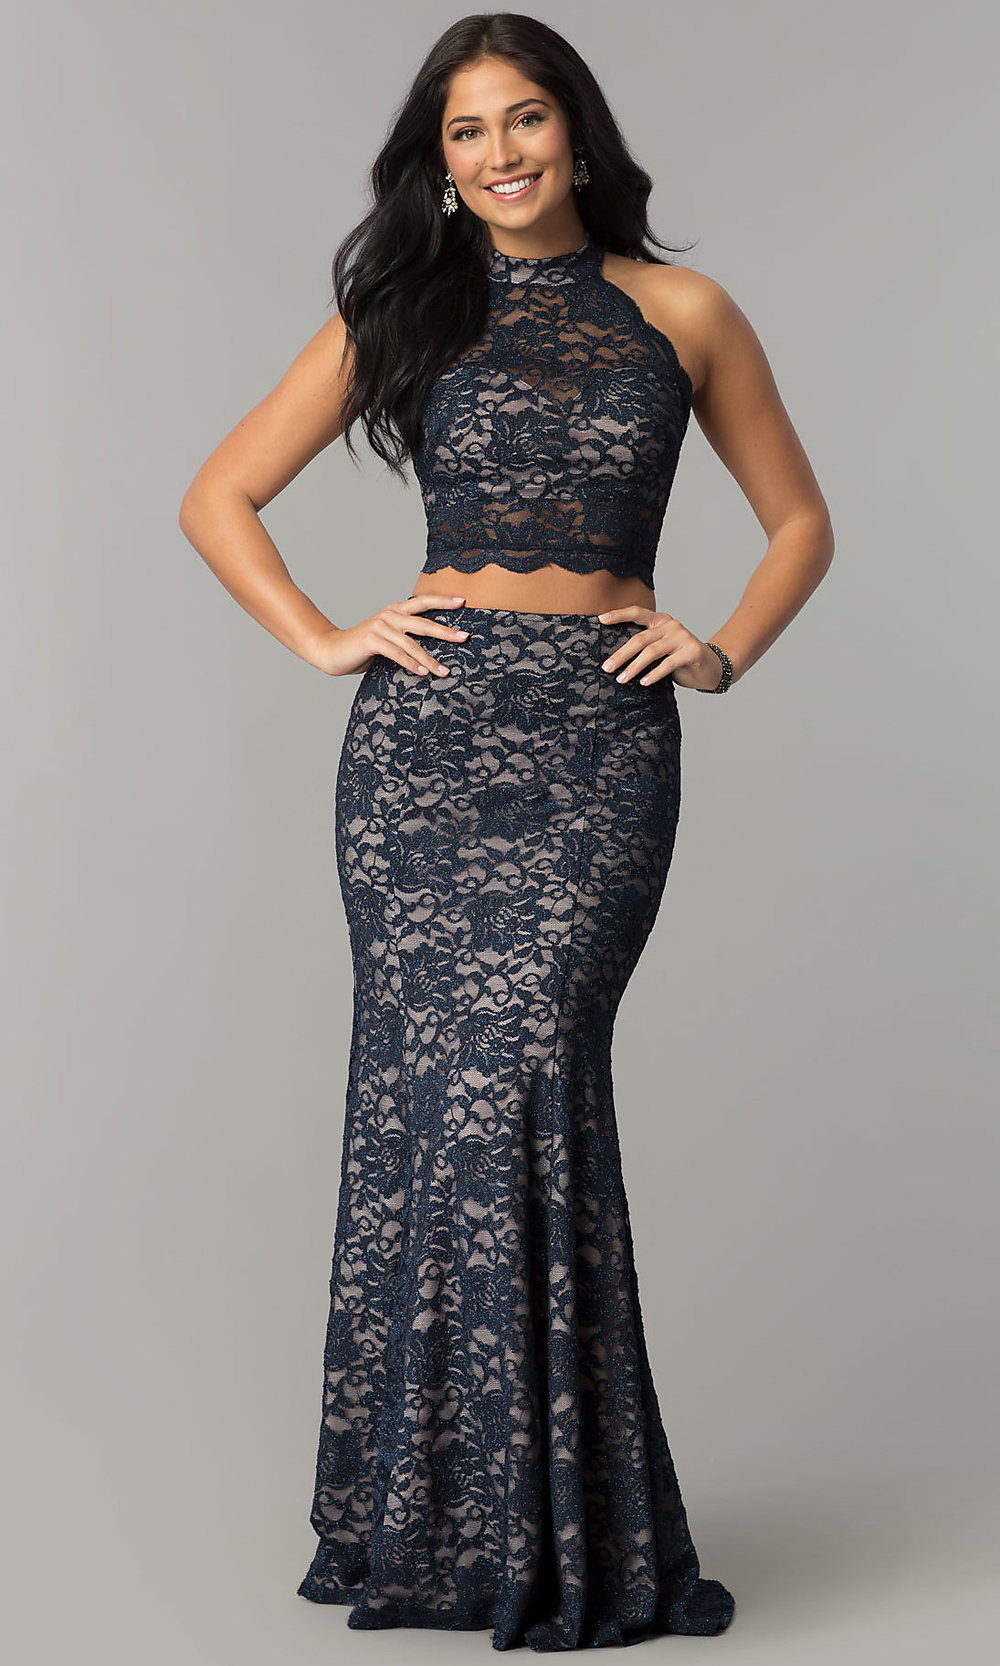 Glitter-Lace Two-Piece Navy Prom Dress - PromGirl